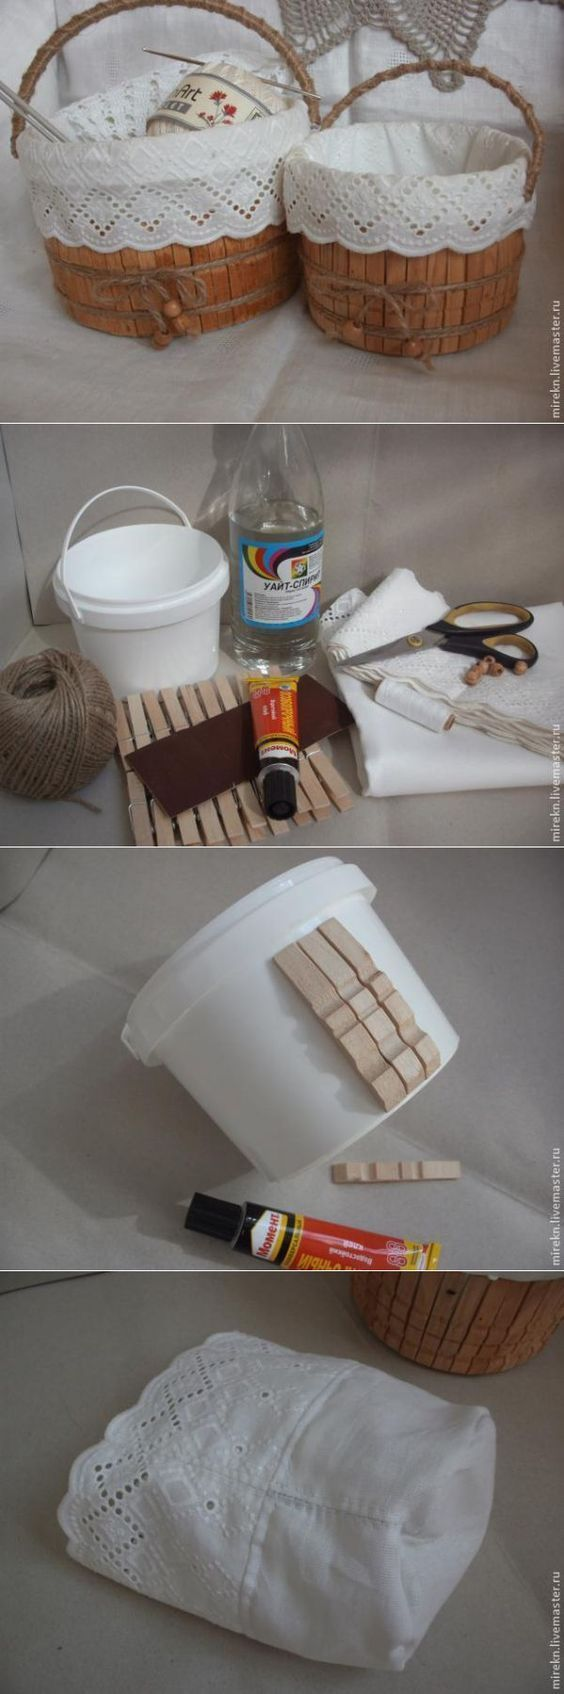 Stylish and decorative basket that makes recycling with plastic buckets